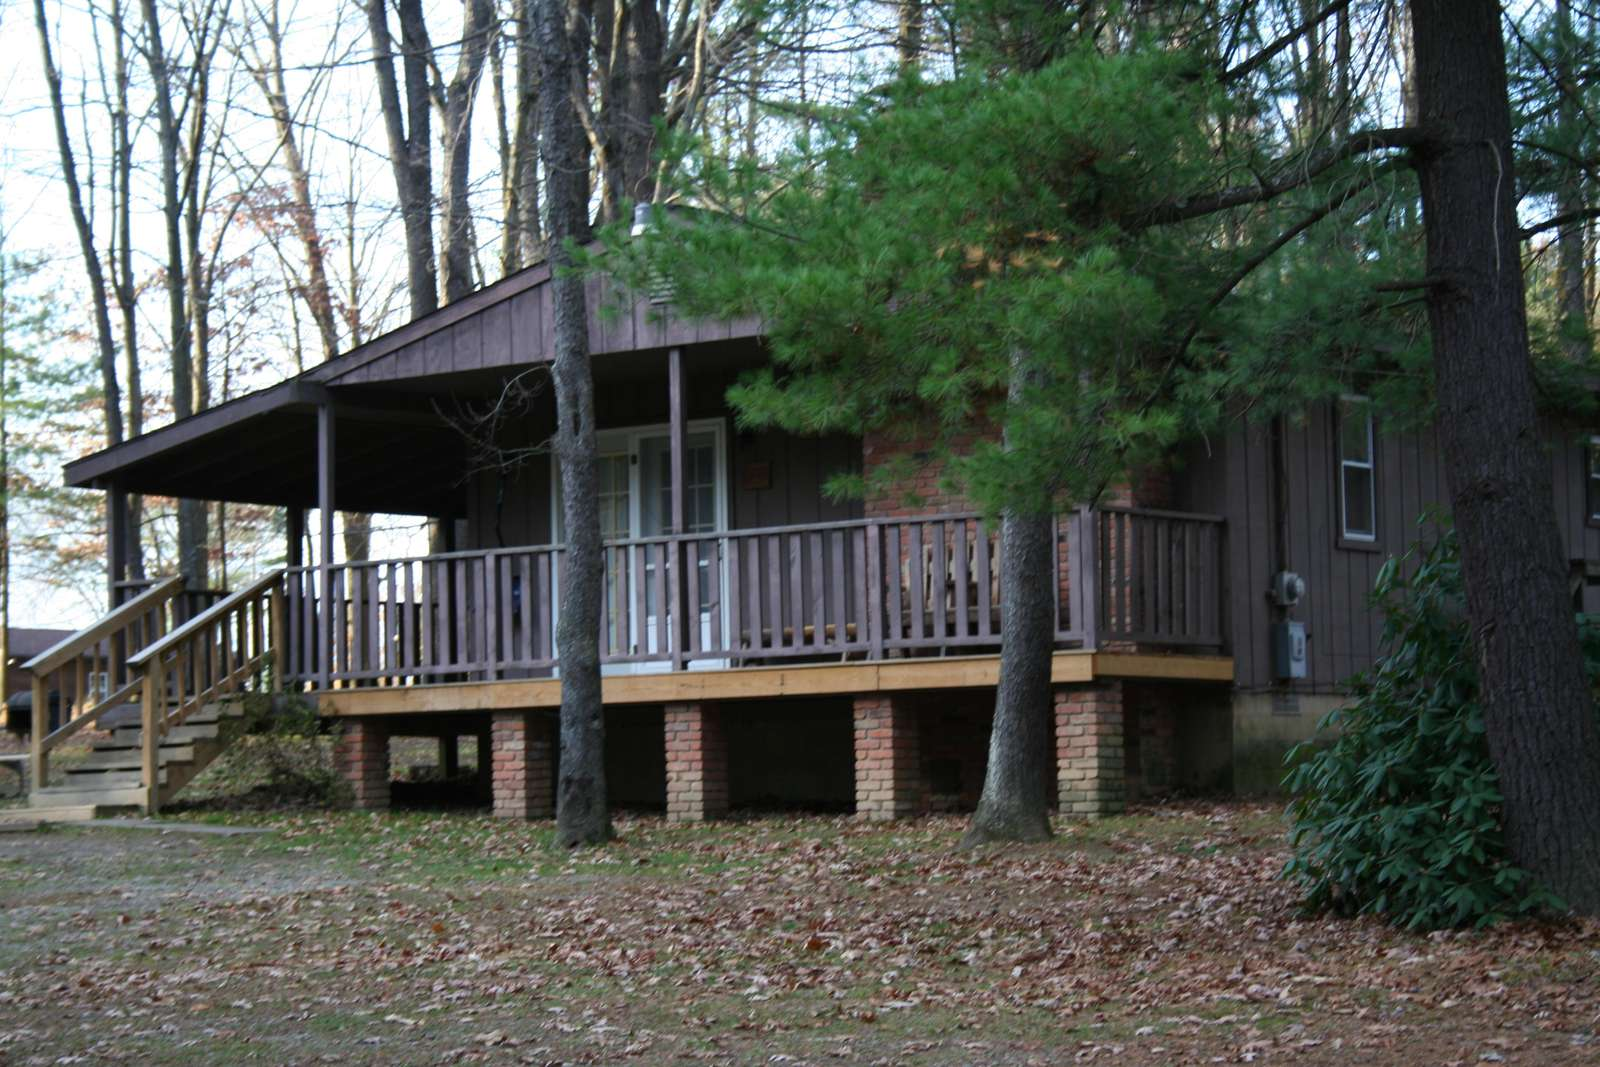 Hemlock Haven Cabin showing a front view.